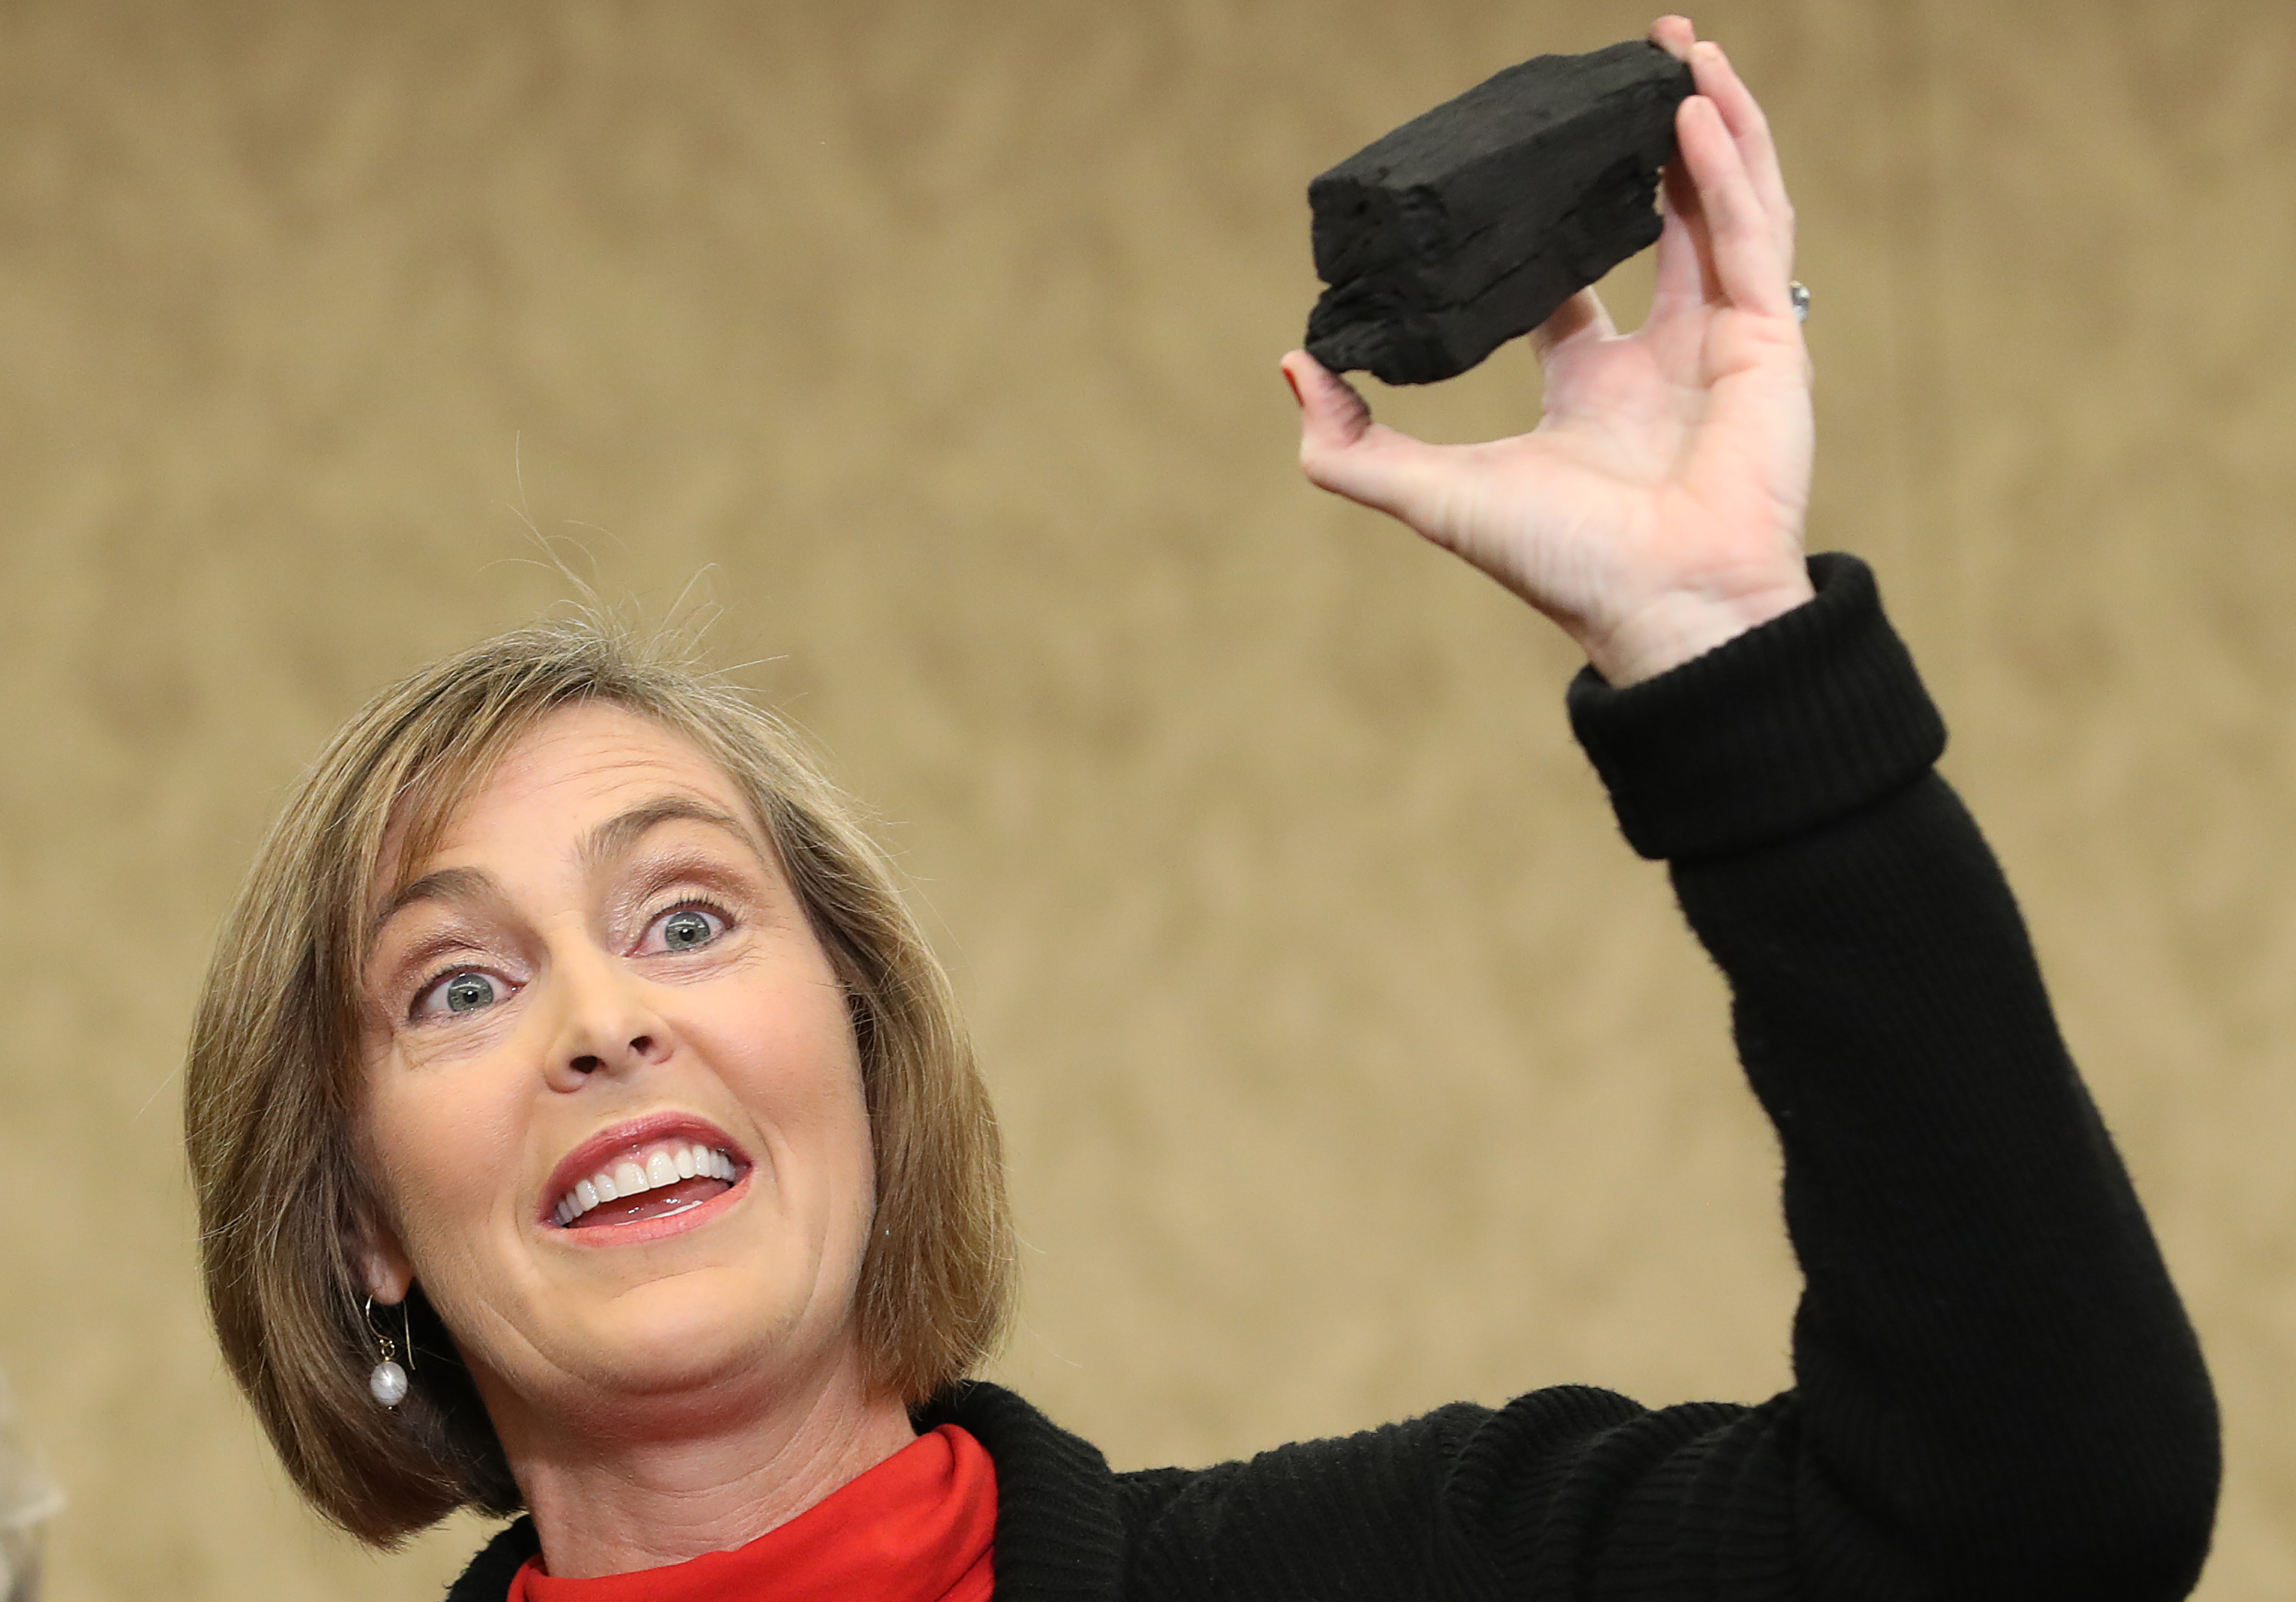 "WASHINGTON, DC - DECEMBER 20: Rep. Kathy Castor (D-FL) holds up a symbolic piece of coal for the holiday season during a press conference with the Democratic Women's Working Group on the Children's Health Insurance Program at the U.S. Capitol December 20, 2017 in Washington, DC. The coal was used to symbolize the Democratic contention that Republican members of Congress need to ""drop their partisan CHIP reauthorization and adopt reasonable offsets to ensure nine million children keep their health care."" (Photo by Win McNamee/Getty Images)"